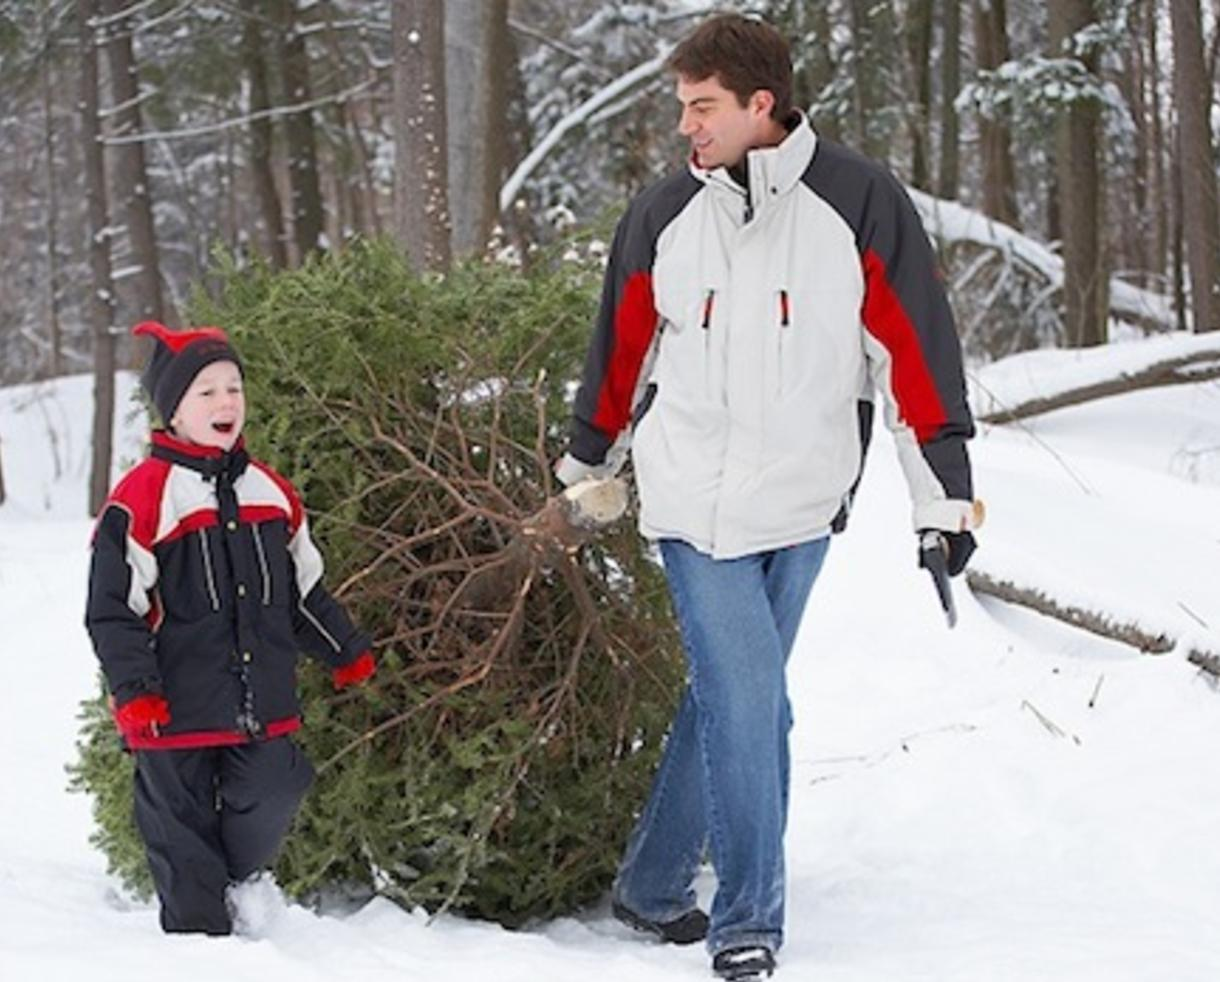 $70 for Cut-Your-Own Christmas Tree at Ridgefield Farm & Orchard (up to $125 value – 44% off)